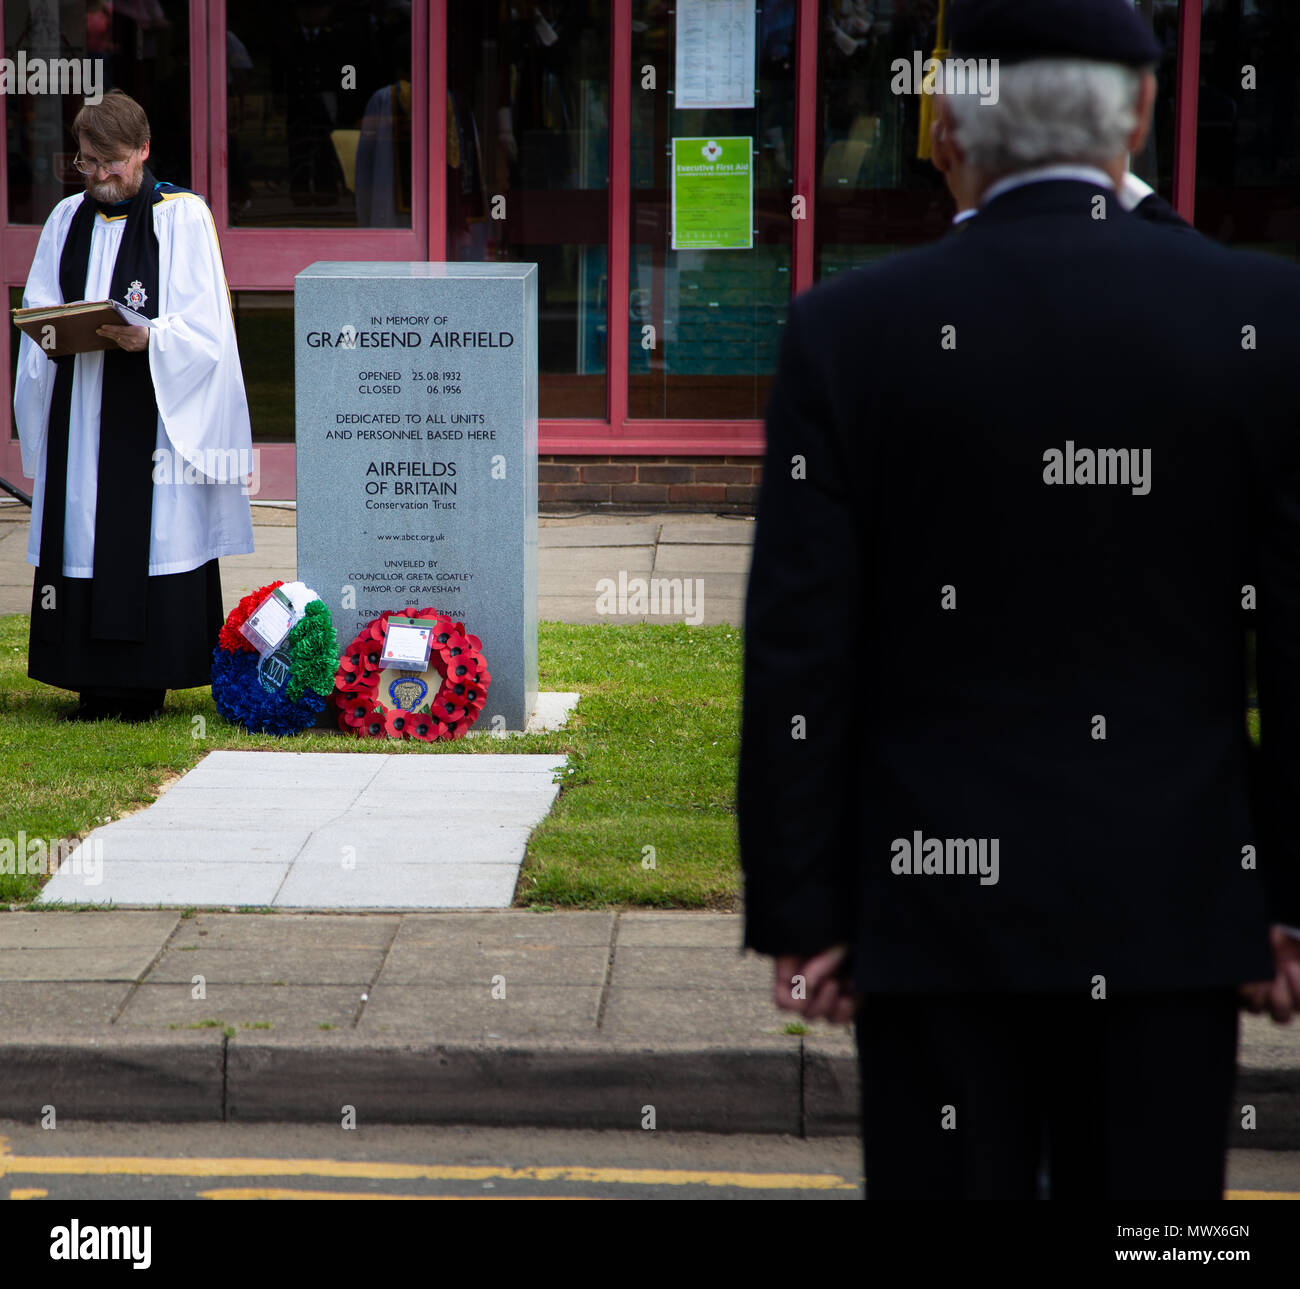 Gravesend Airport, Kent, UK. 2nd Jun, 2018. Veterans stand while a service is given by The Rev'd Nigel Bourne, Dean of Gravesend at the service for lost airmen on the site of the old Gravesend Airport.  Credit A Beck/Alamy Live Credit: Andrew Beck/Alamy Live News - Stock Image